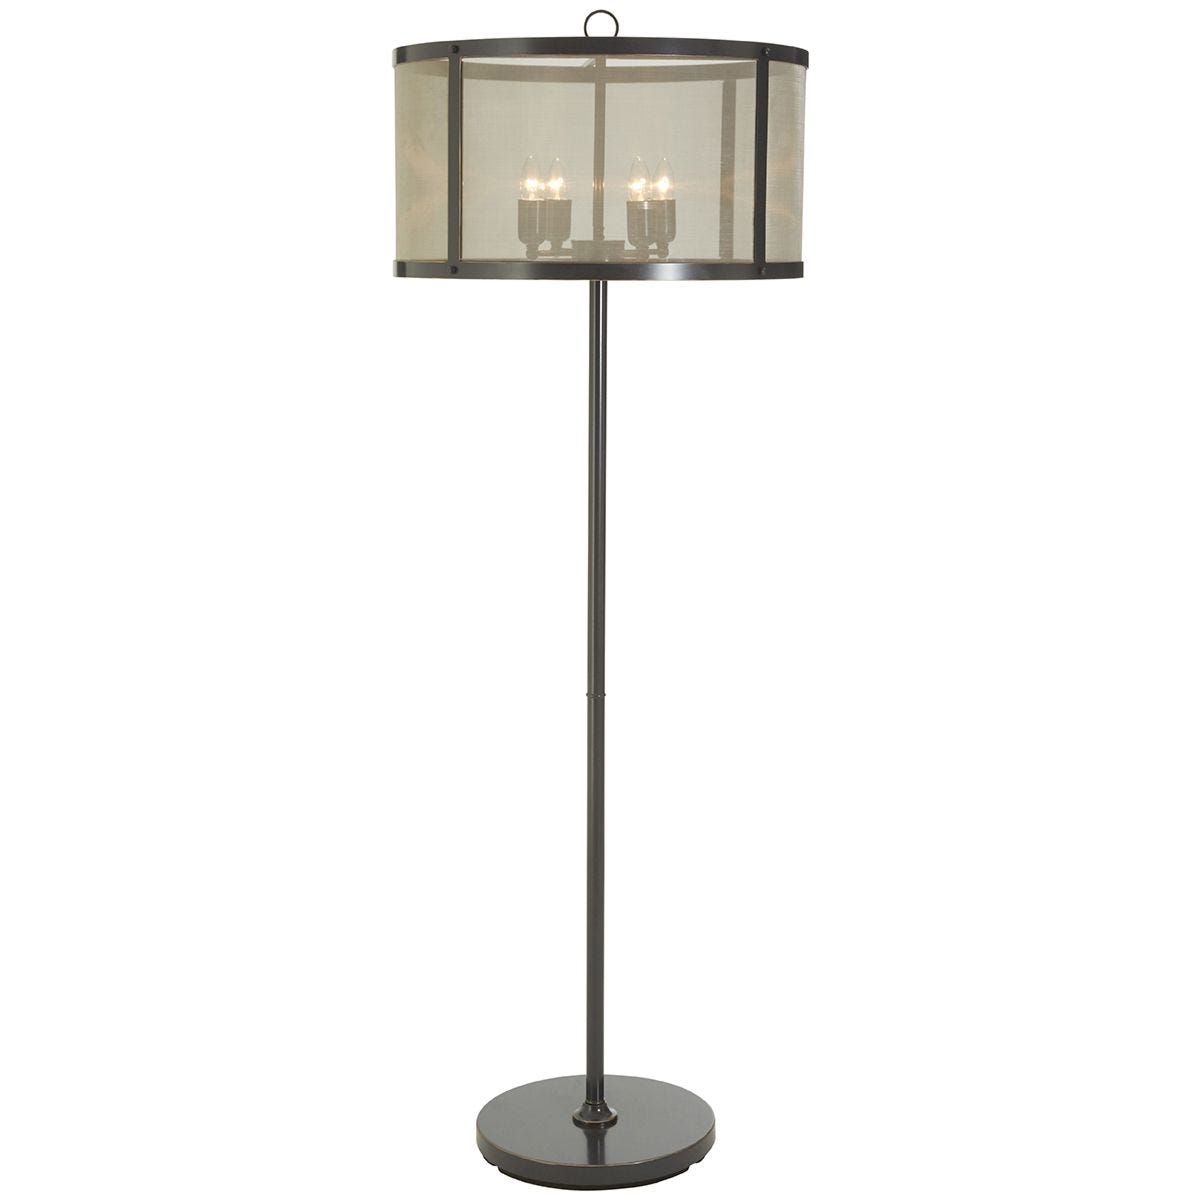 Premier Housewares Hampstead Wide Pendant Light in Iron with Gauze - Antique Black/Gold Finish